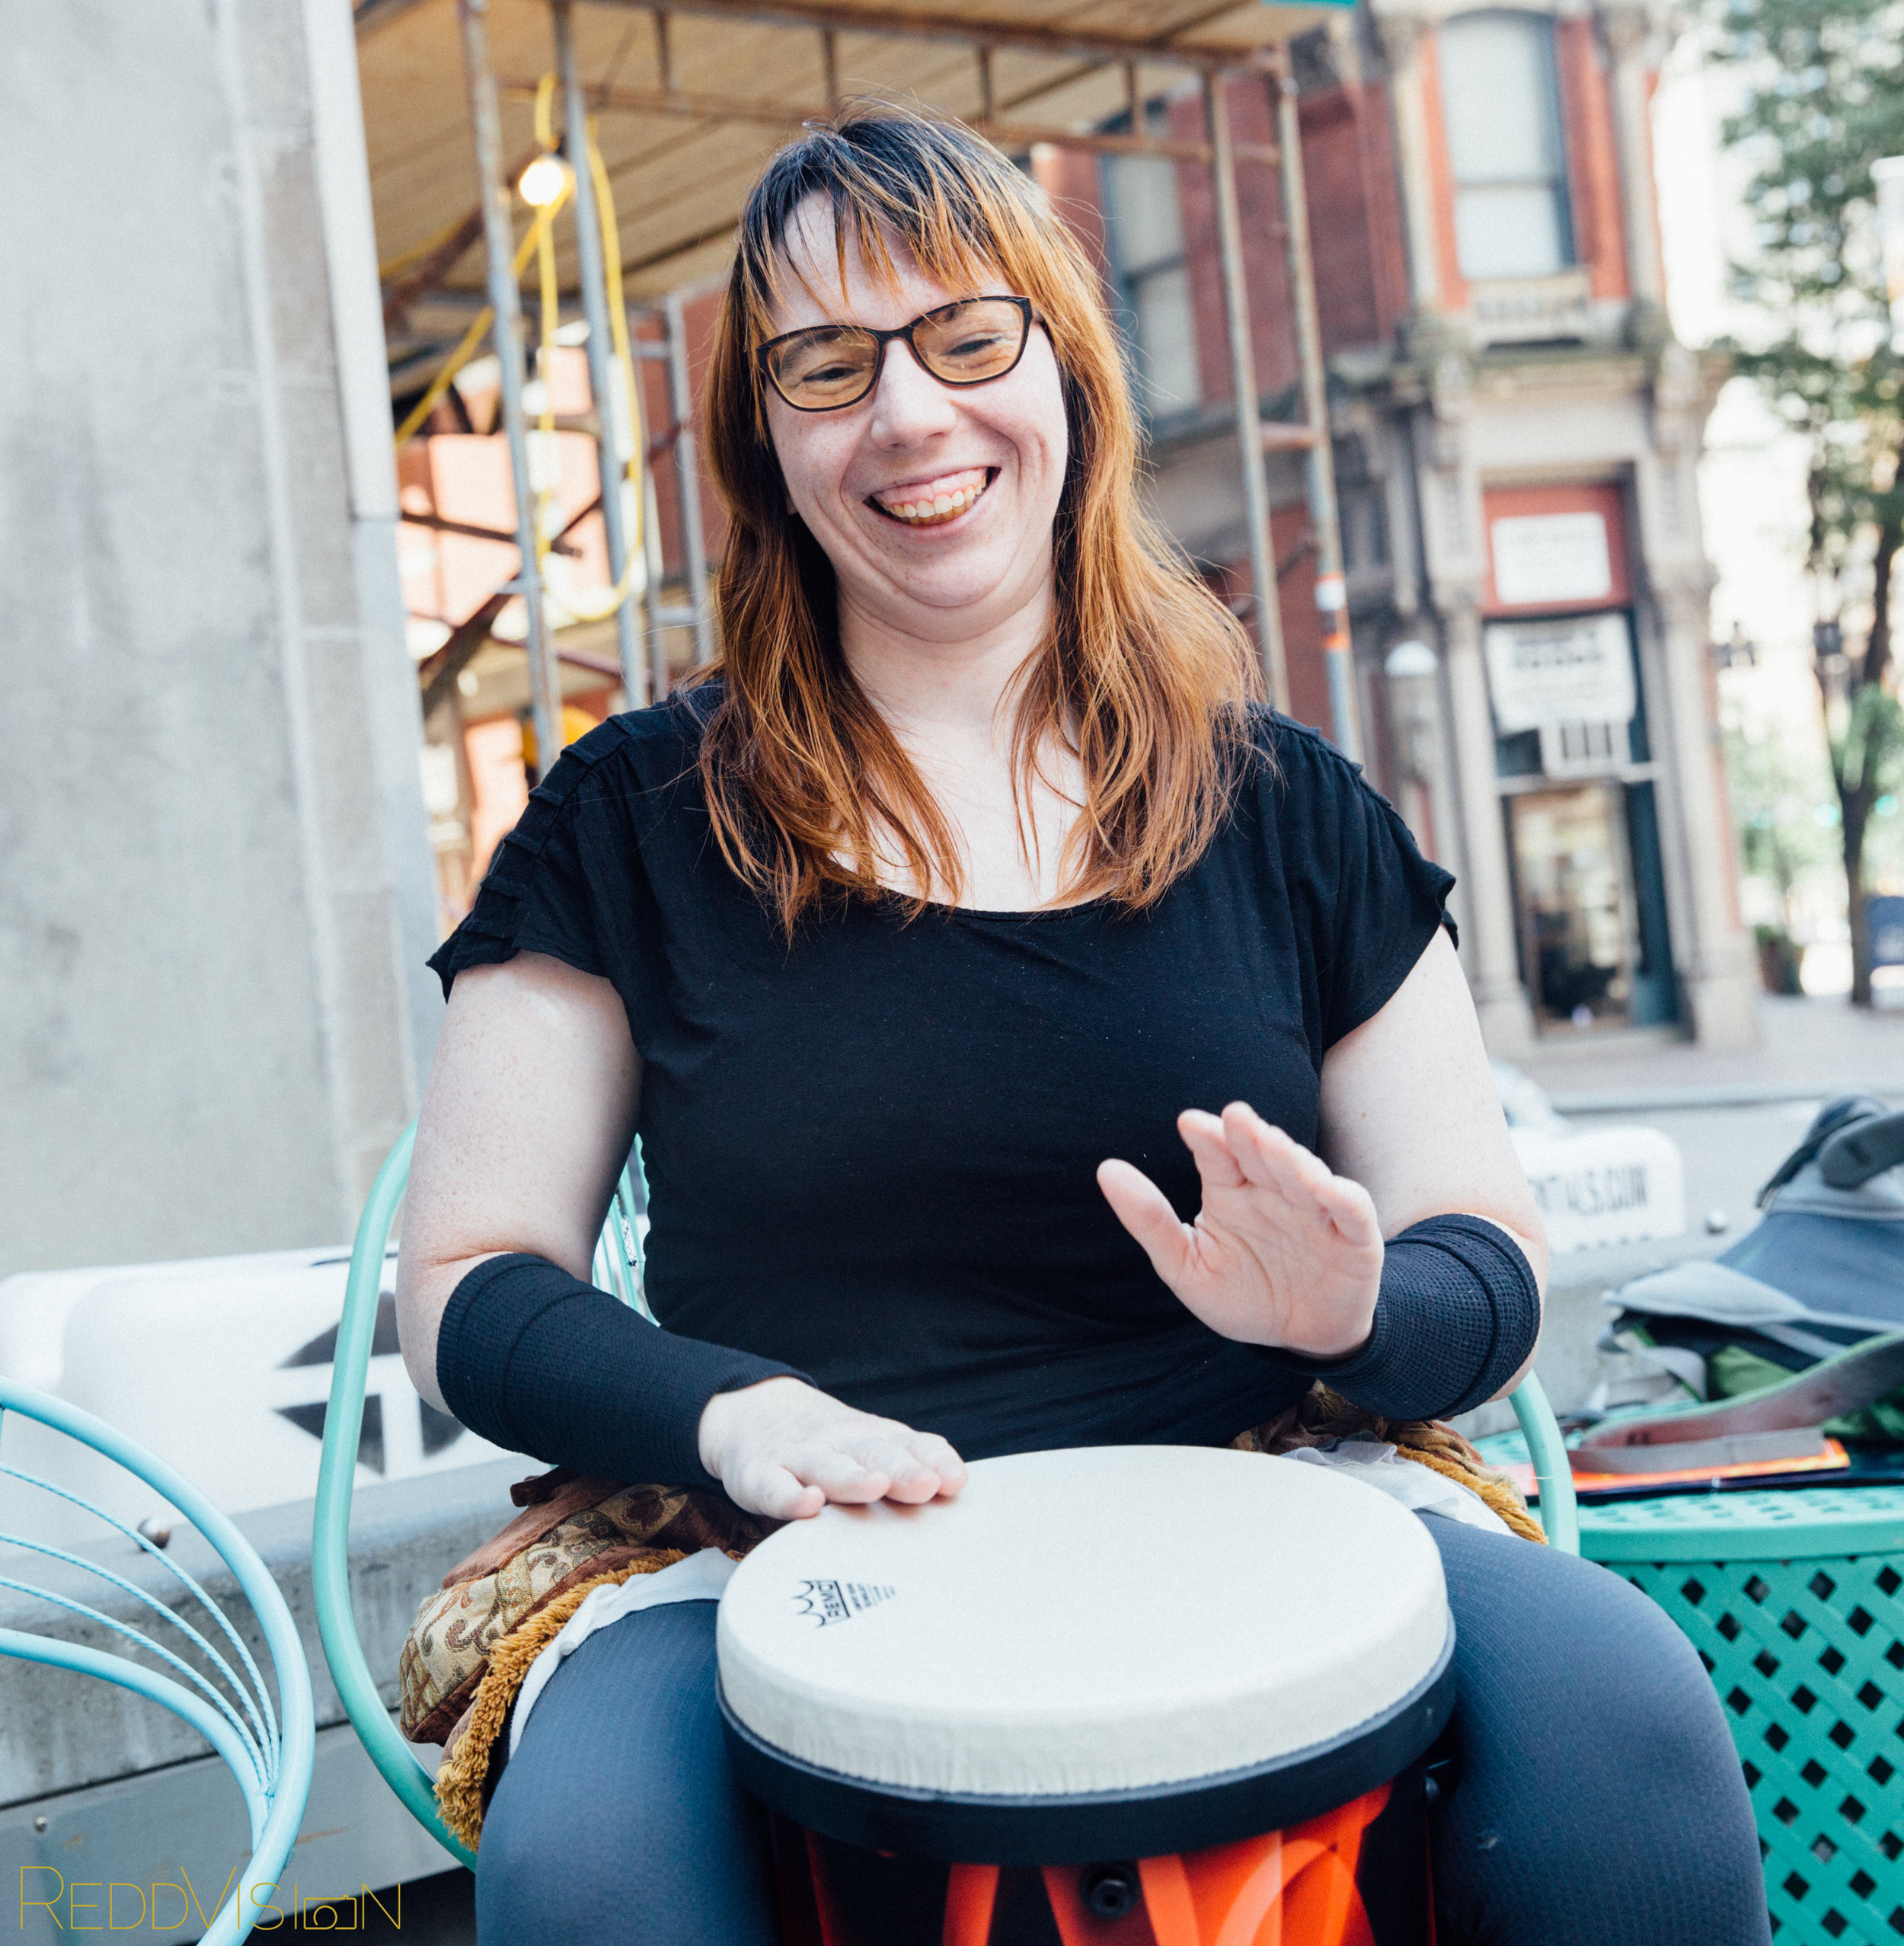 CREATE-Festival- Drumming lady.jpg